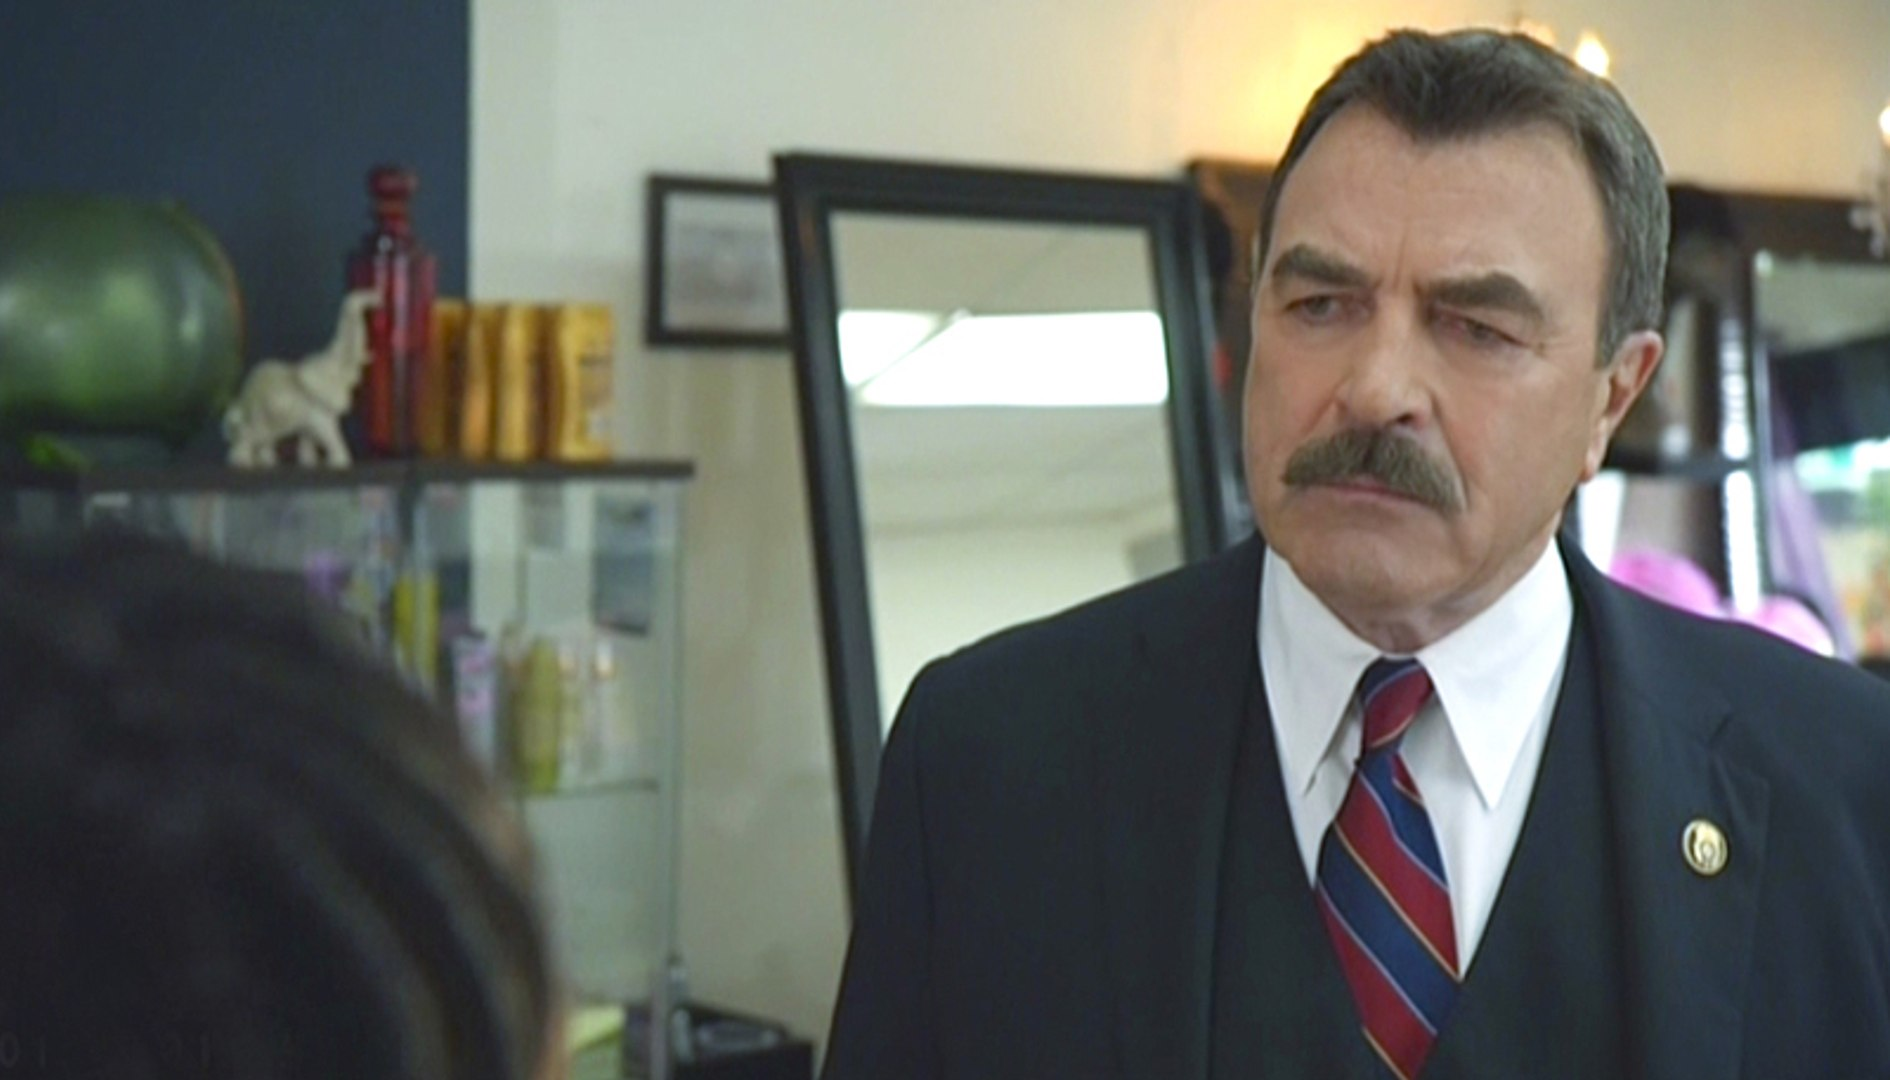 Blue Bloods Season 8 Episode 15 (Se.08 Ep.15) - Streaming